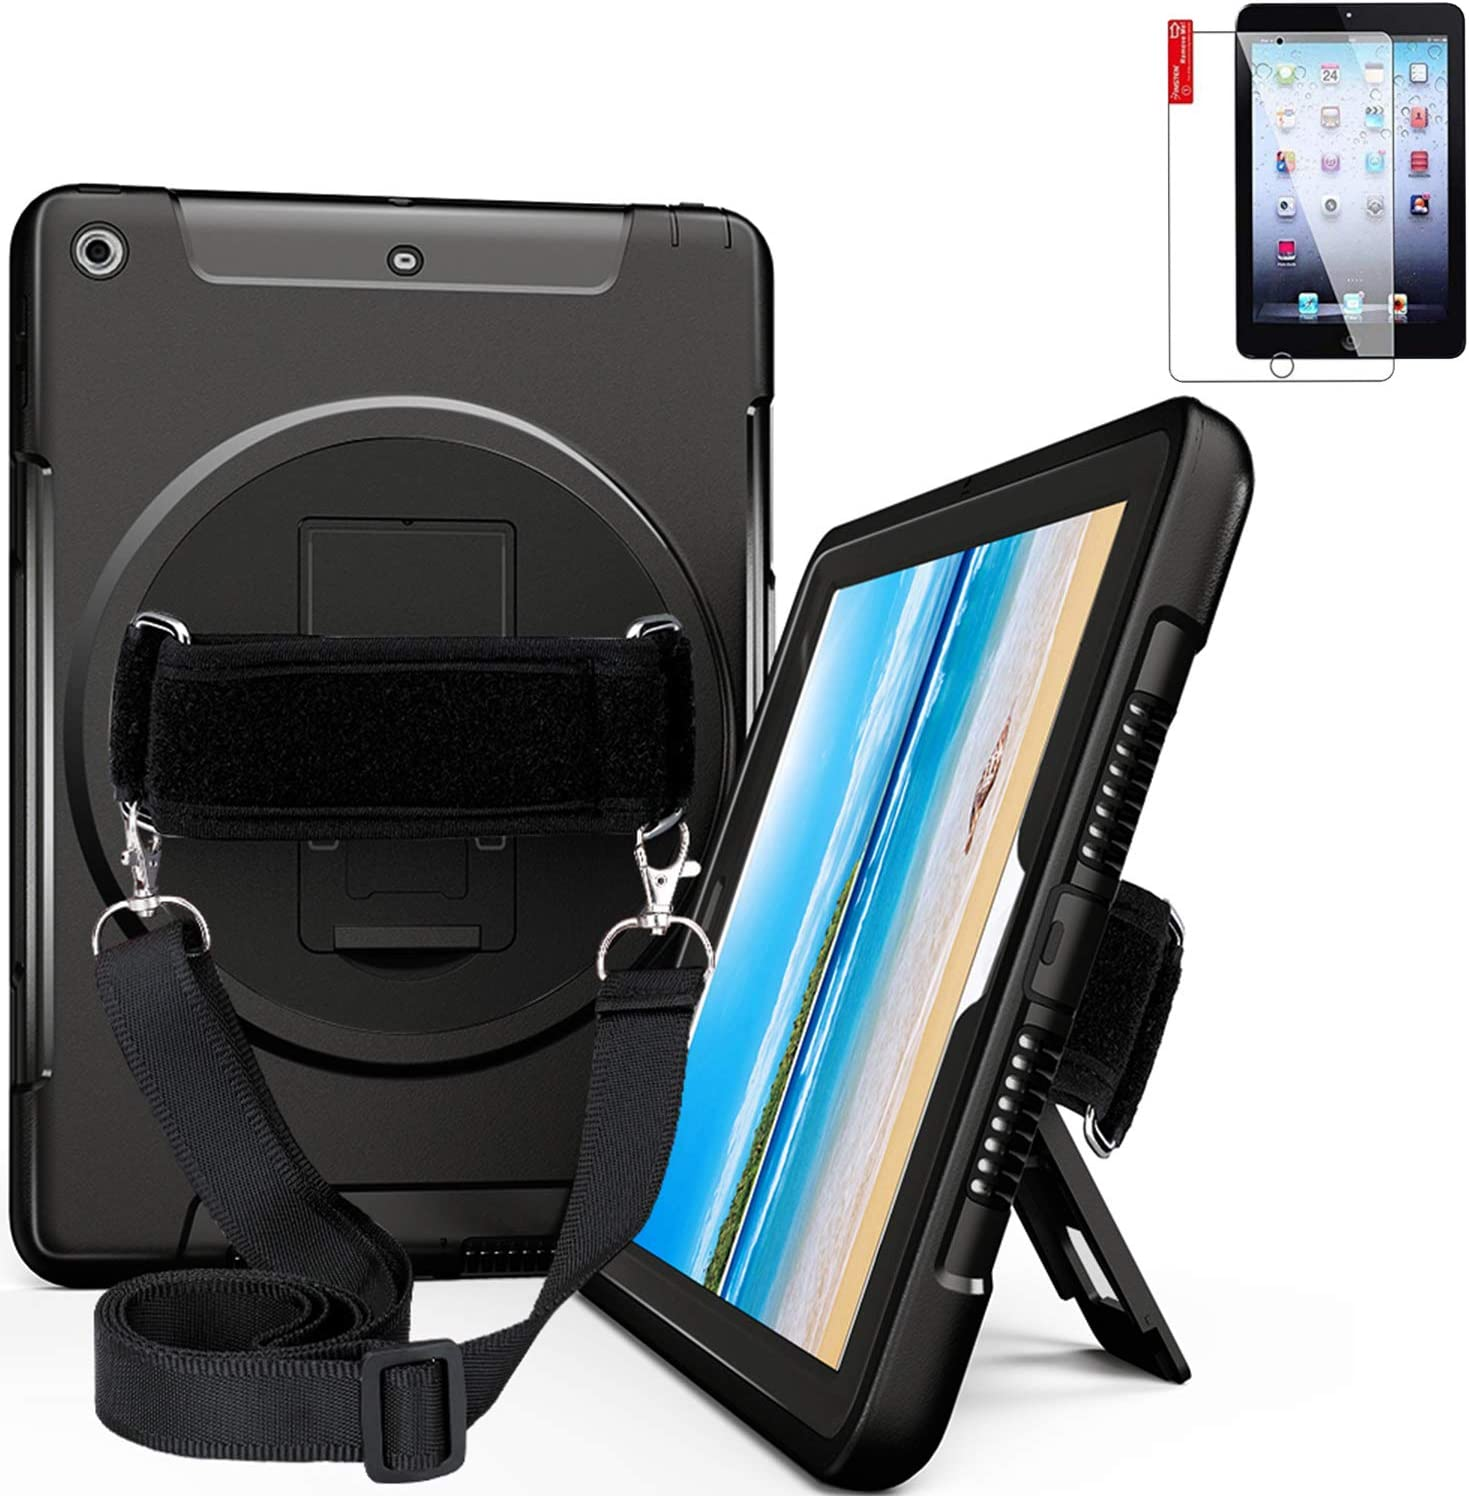 NEWQIANG iPad Air 2 Heavy Duty Full-Body Rugged Case with Screen Protector - Hand Strap,Shoulder Strap,Hardback, 360 Rotatable Kickstand, Shockproof - A1566 A1567 MGKL2LL/A (Black)